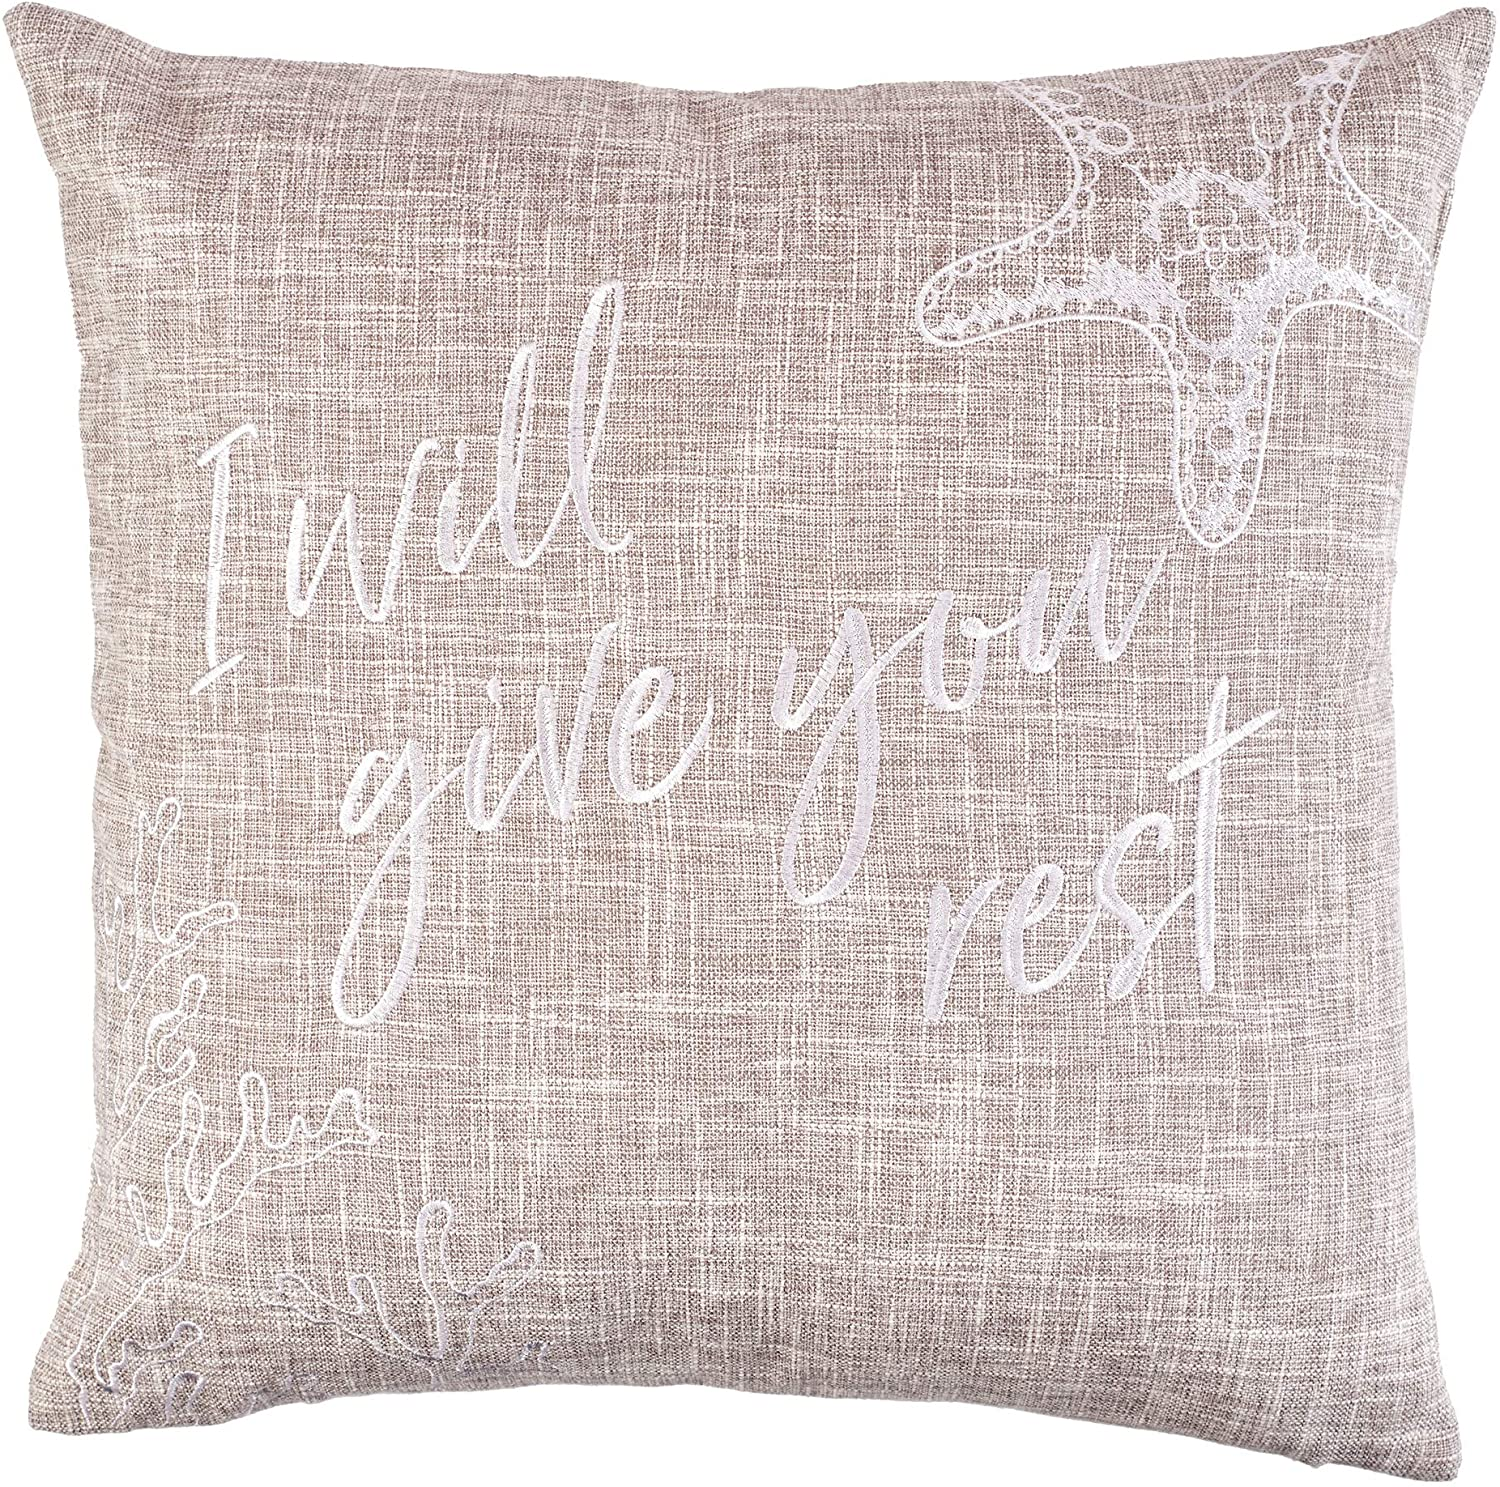 Christian Art Gifts Decorative Throw Pillow | Give You Rest – Mathew 11:28 | Embroidered Tan Couch Pillow and Inspirational Home Decor (18 x 18, Give You Rest - Tan)